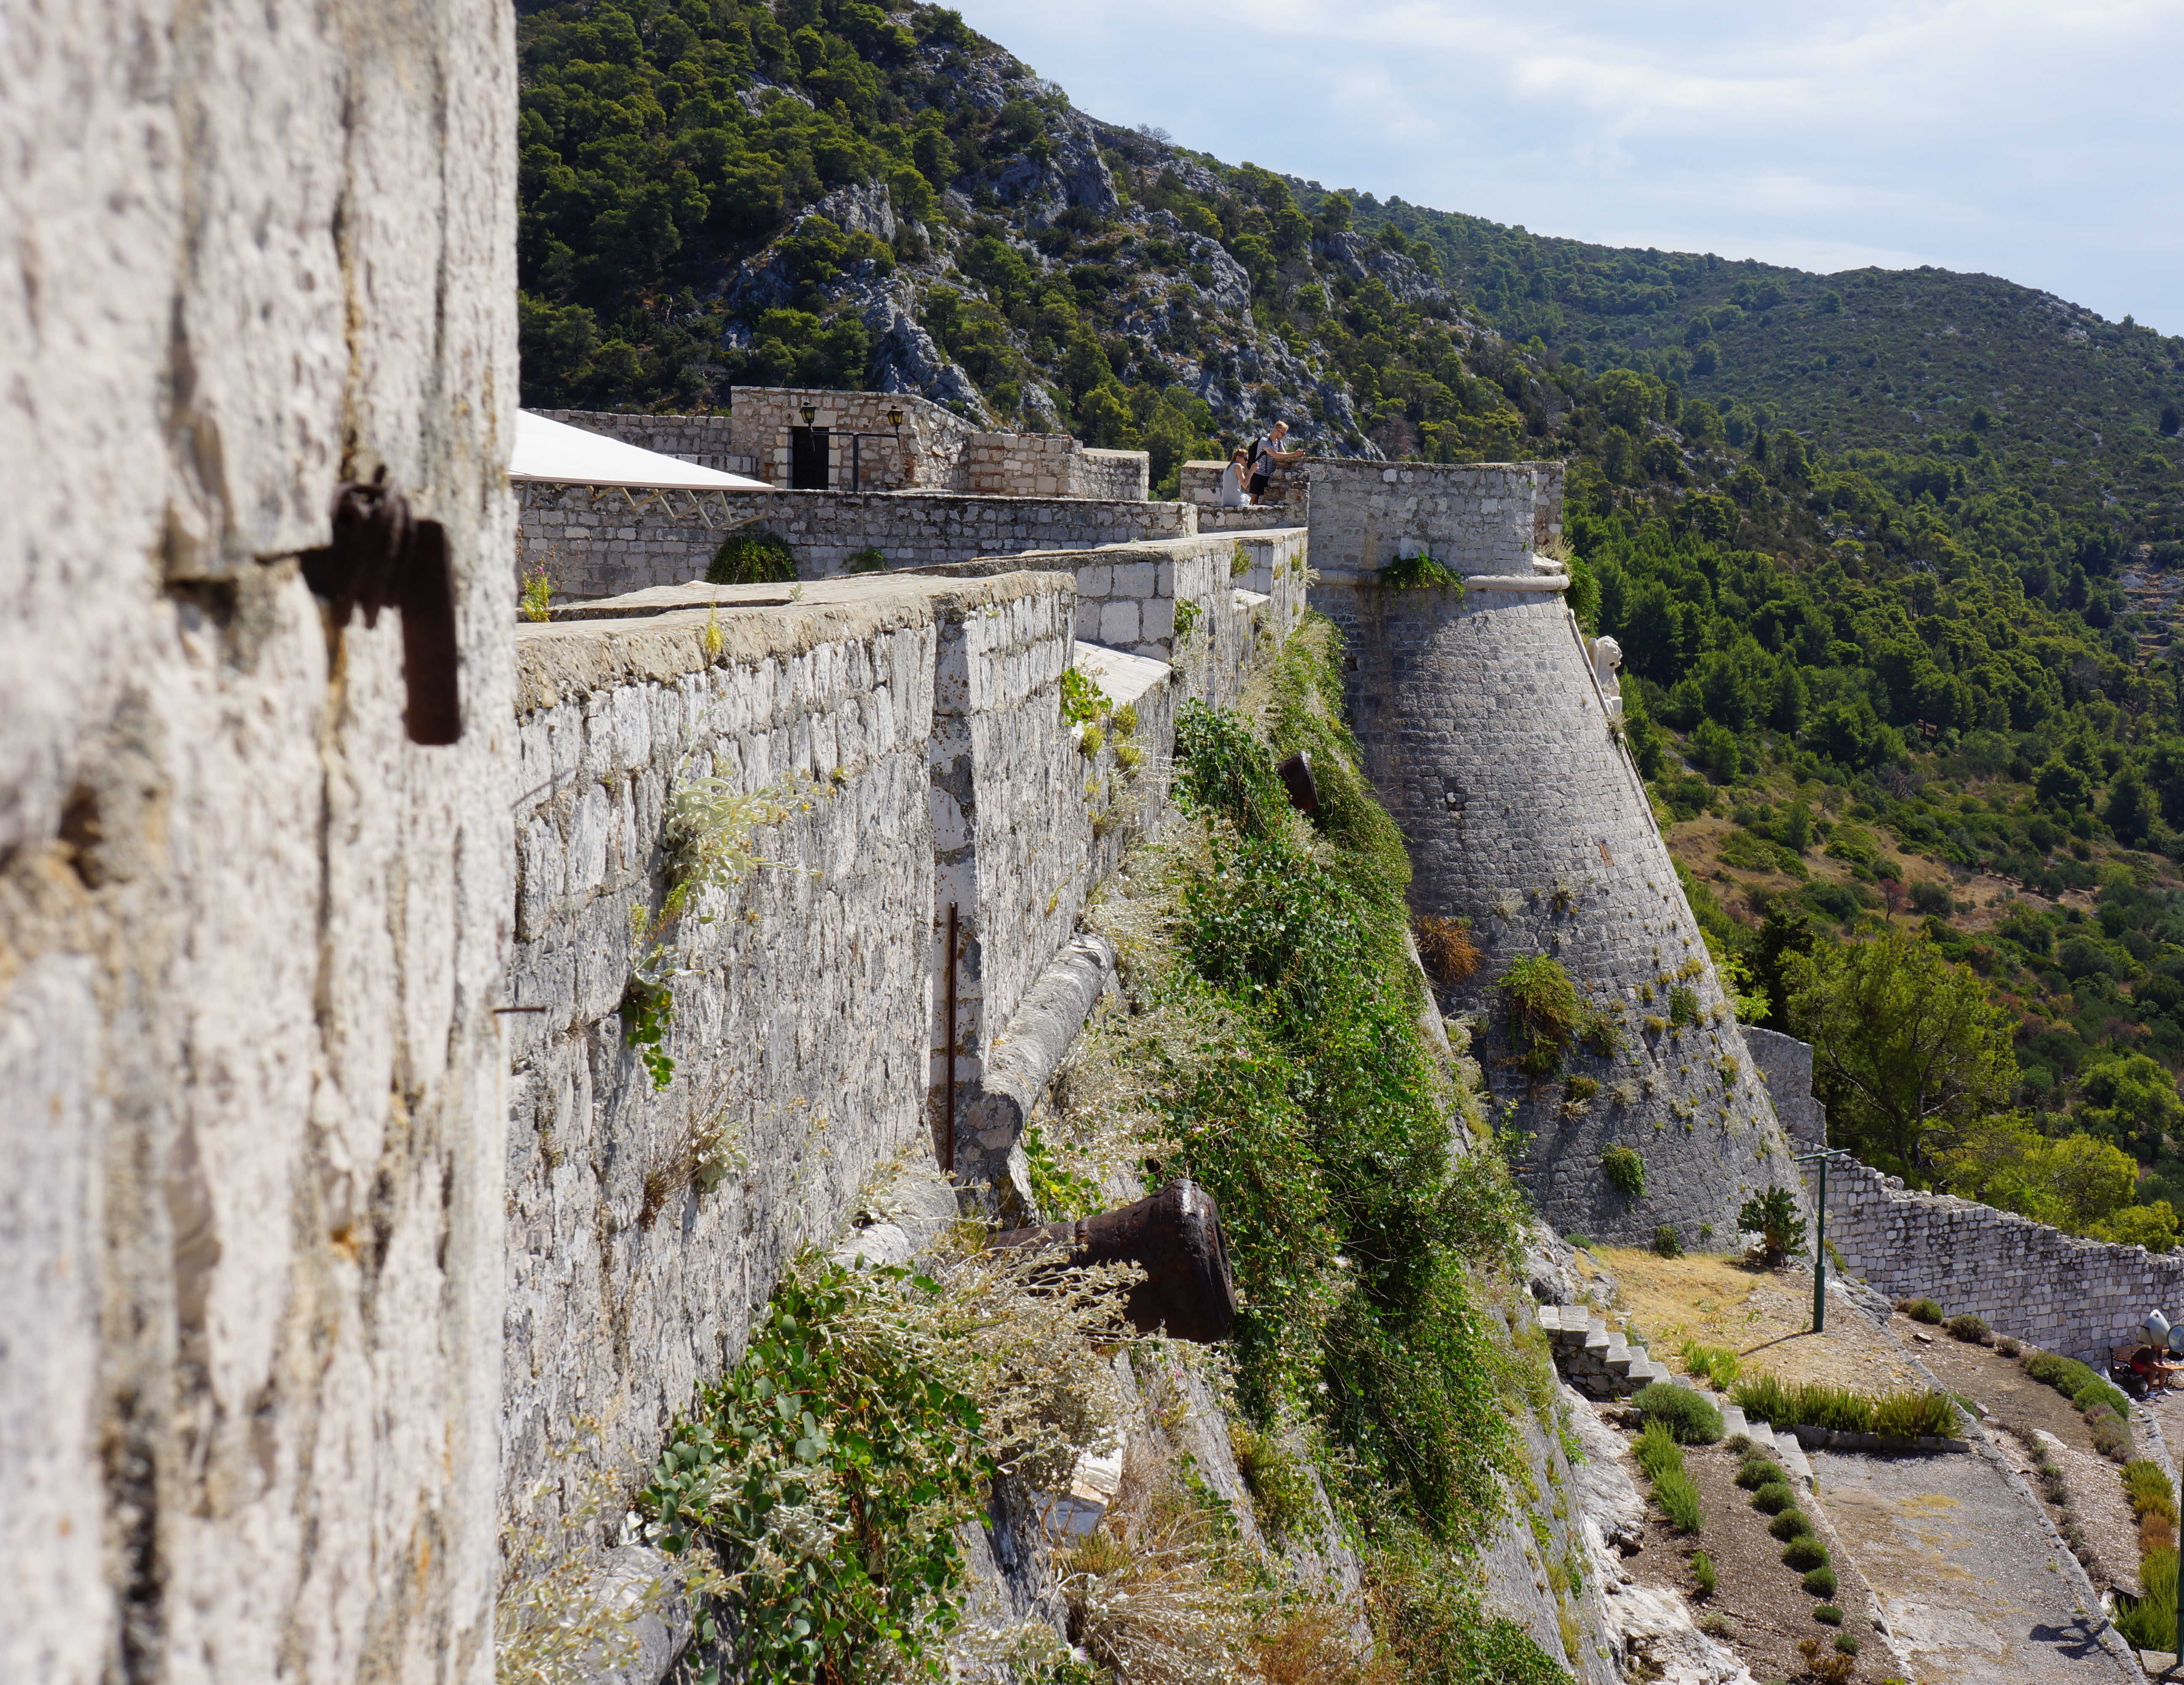 """The television show """"Game of Thrones"""" is filmed in Croatia and that the city of Dubrovnik is one of the most important locations."""